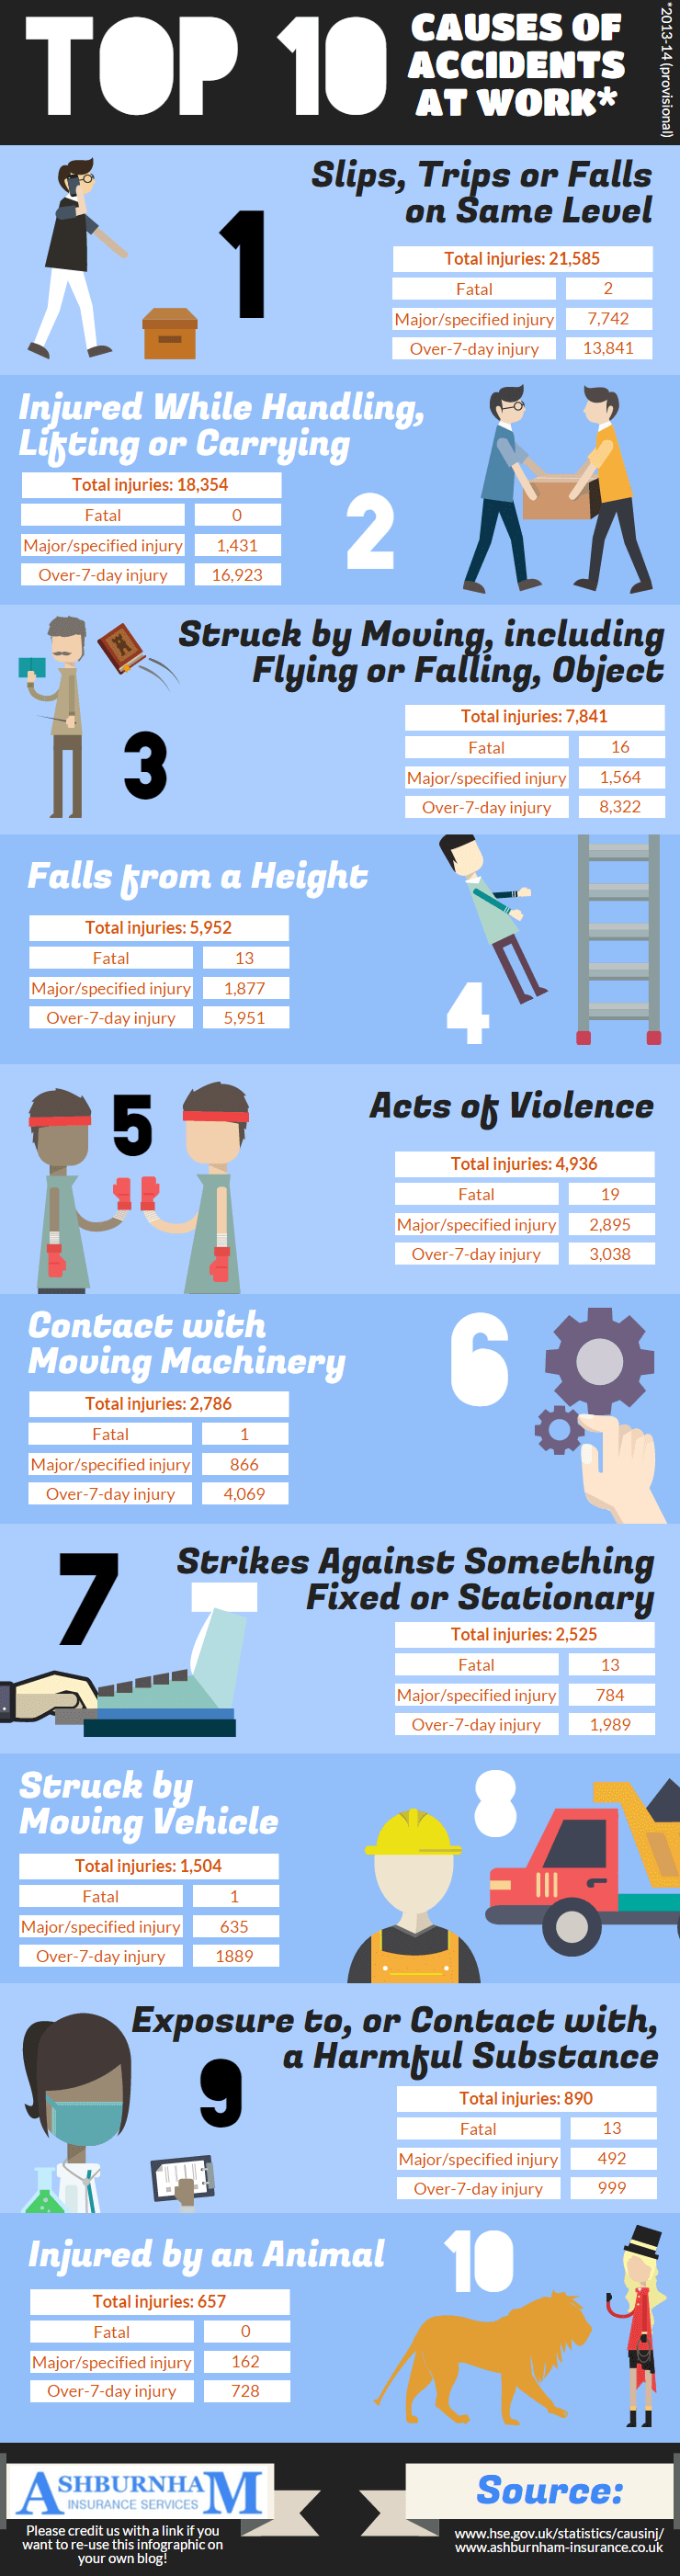 Top 10 Causes Of Accidents At Work